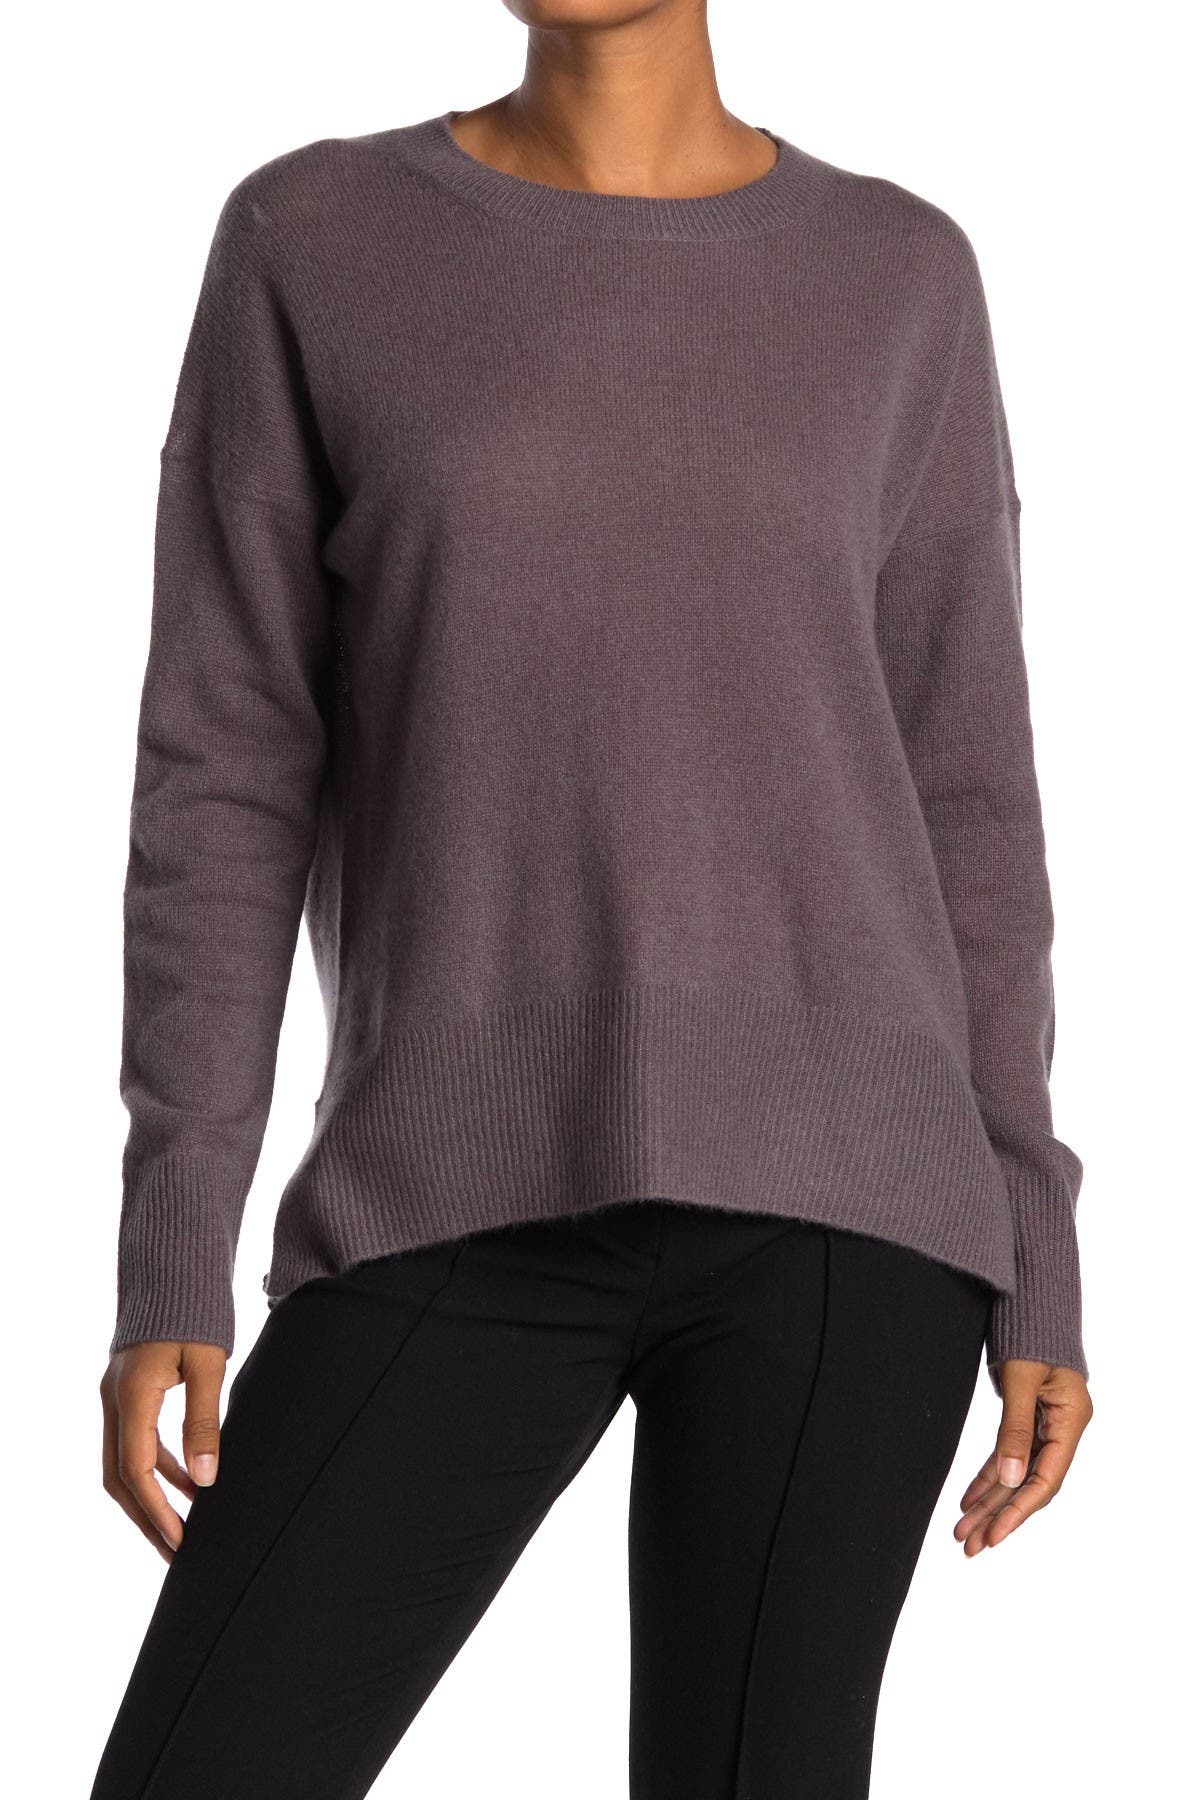 Image of M Magaschoni High/Low Pullover Cashmere Sweater